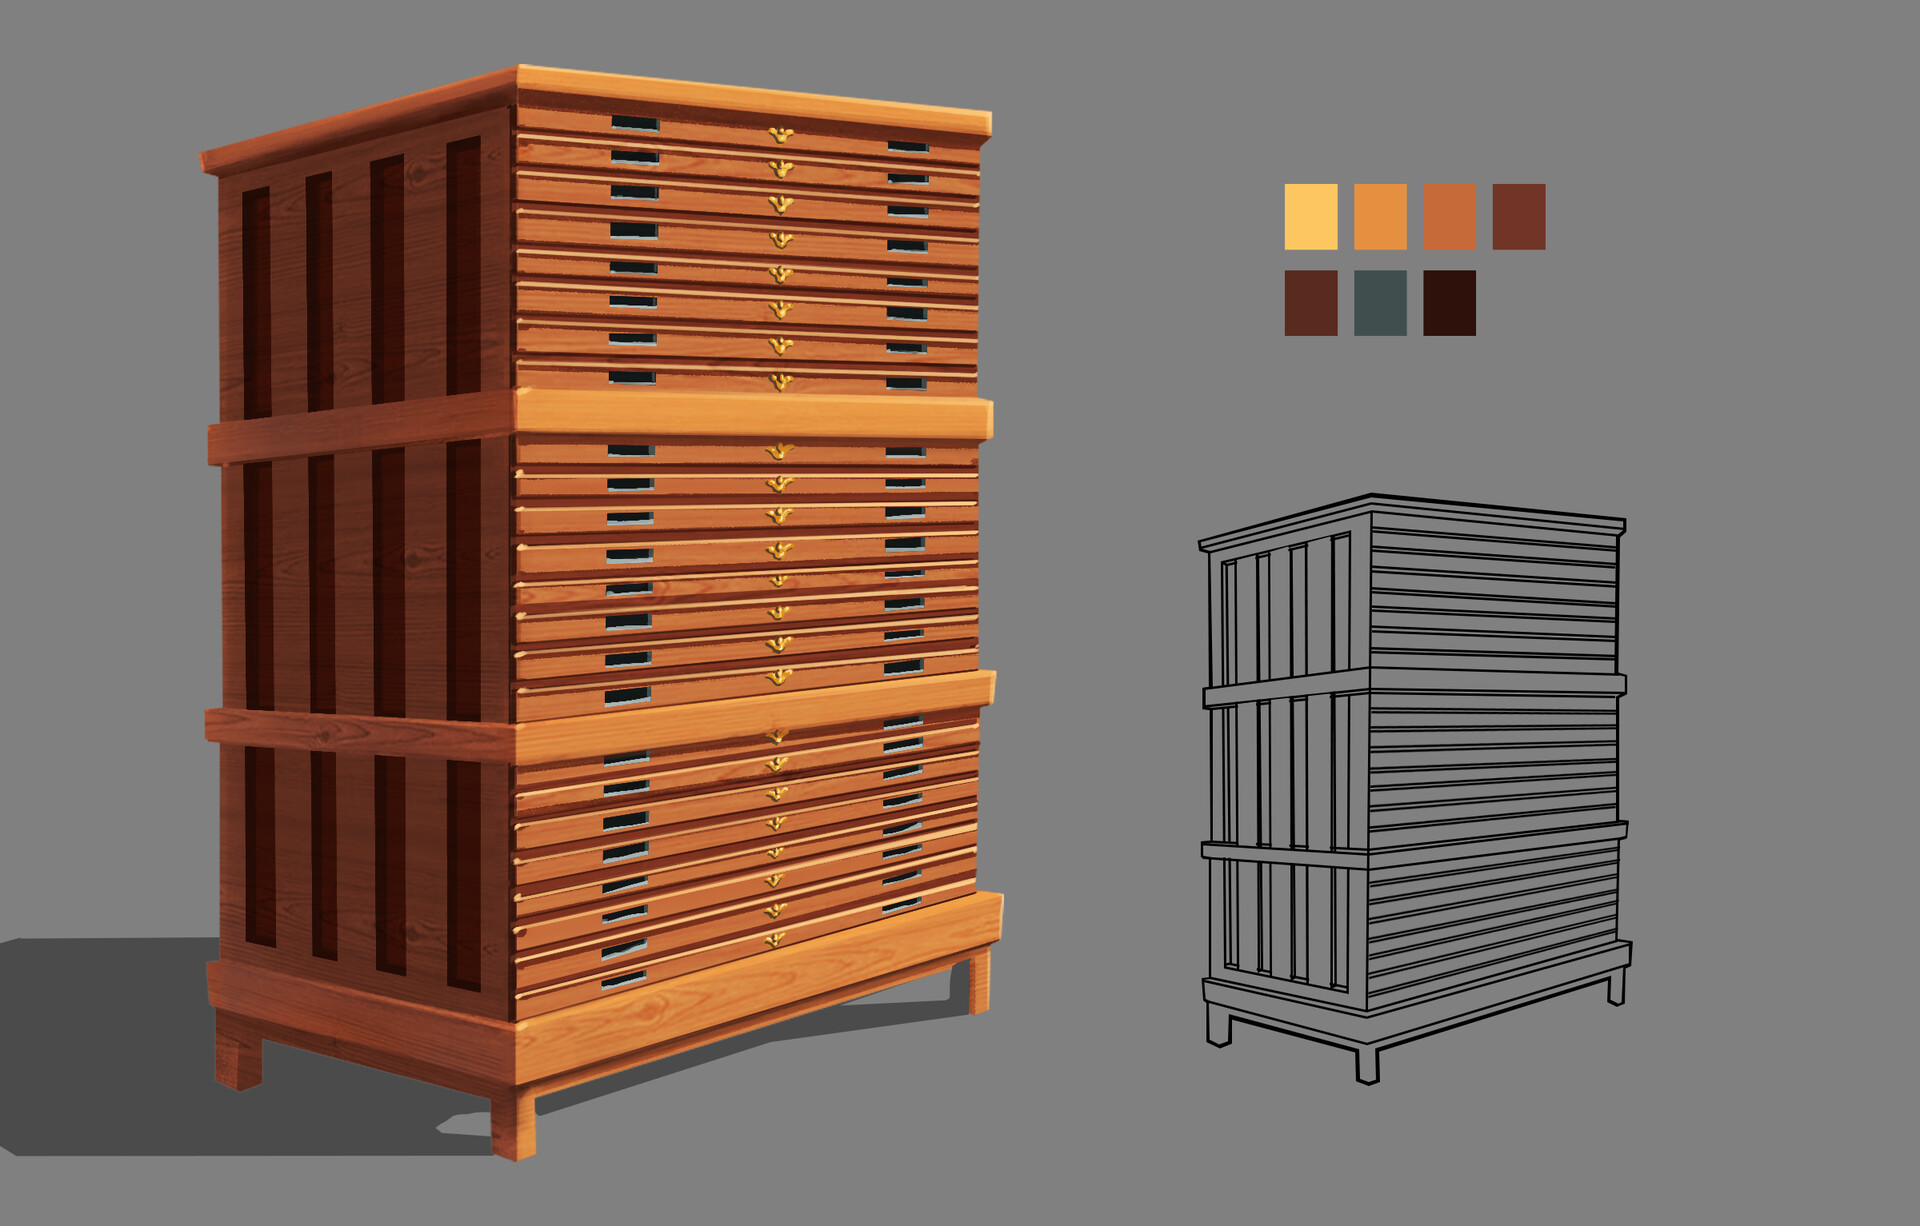 Prop Design of contracts & paper file cabinet from the Edwardian Era.